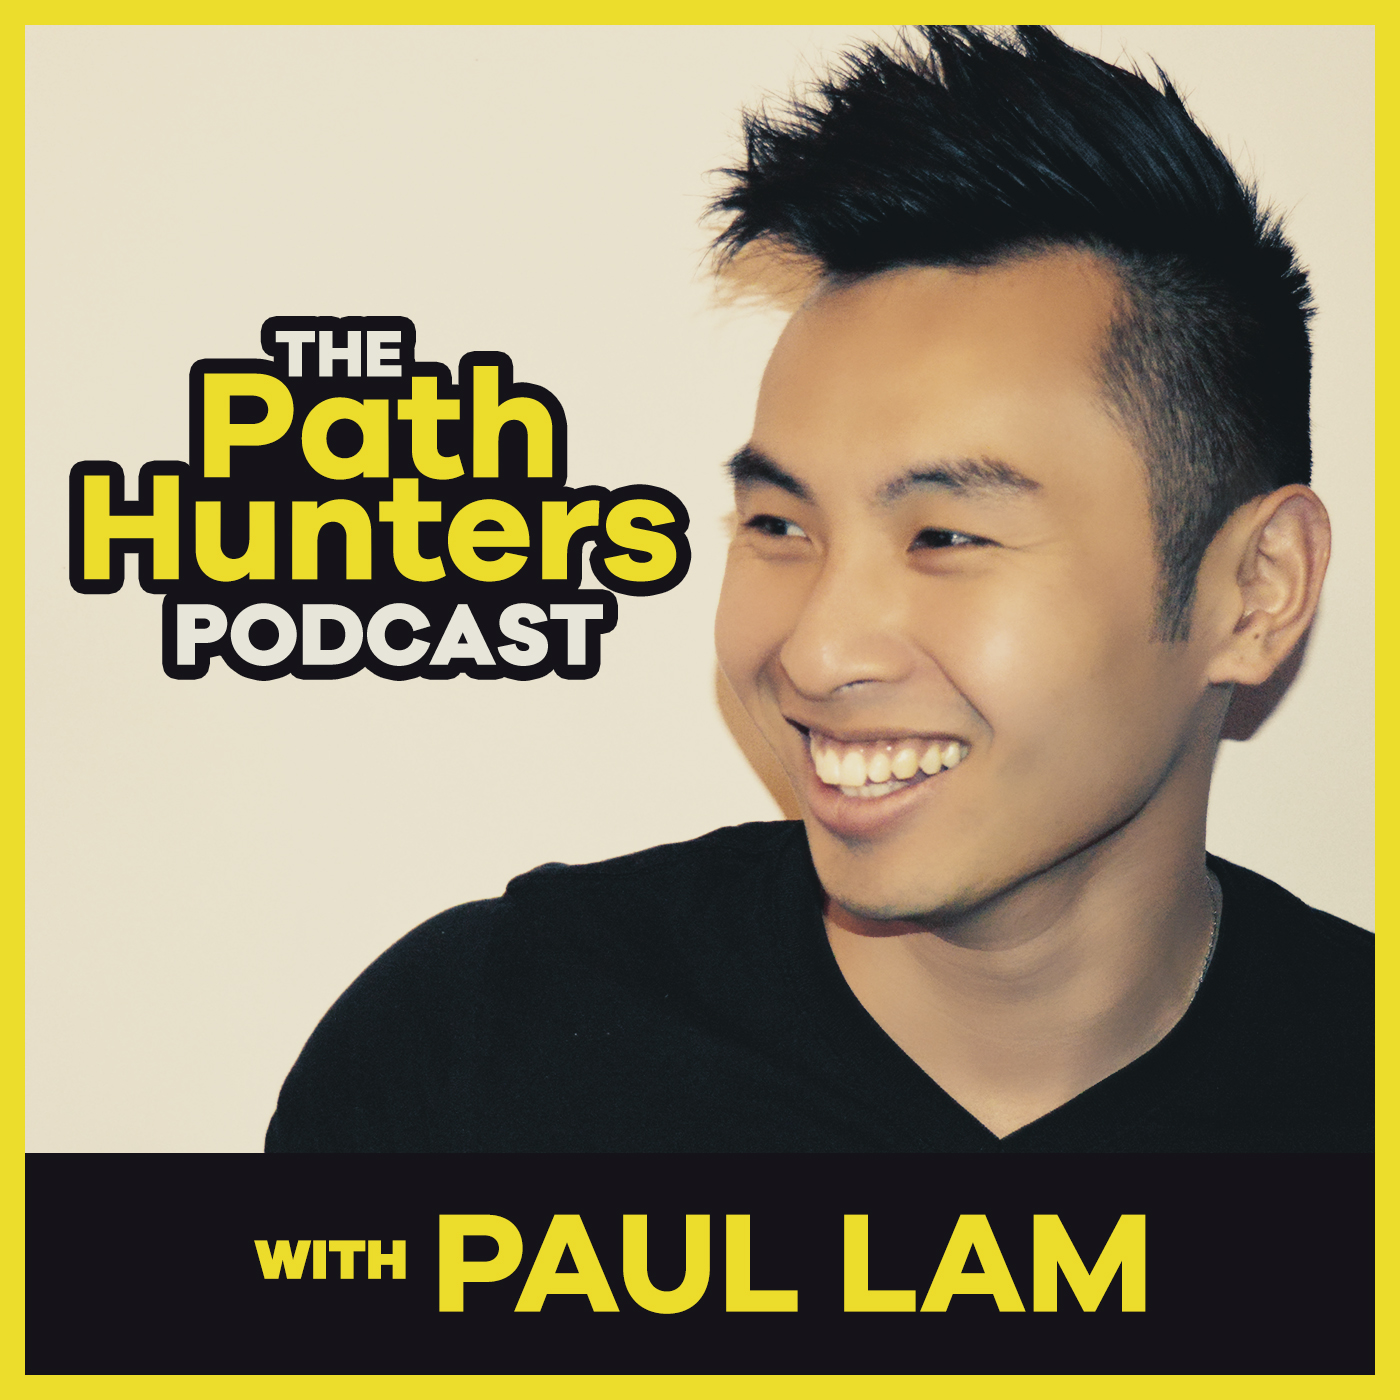 The Path Hunters Podcast show art